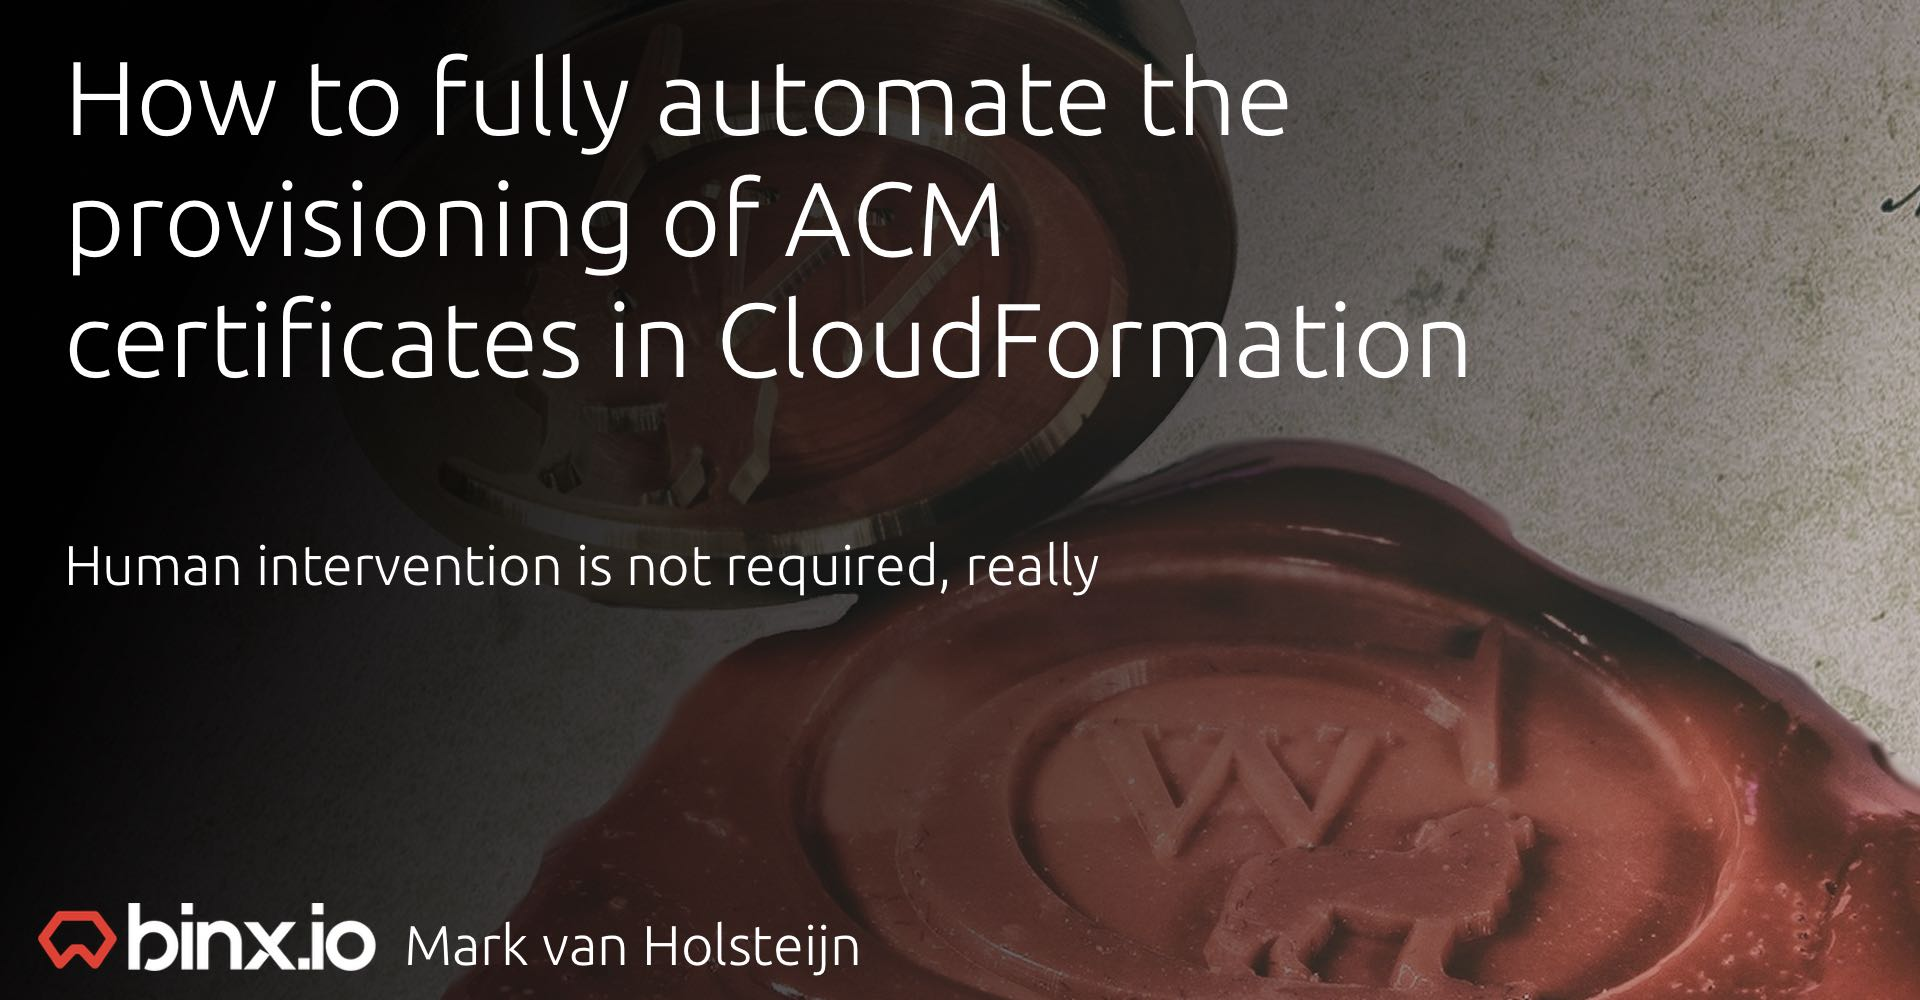 How to fully automate the provisioning of ACM certificates in